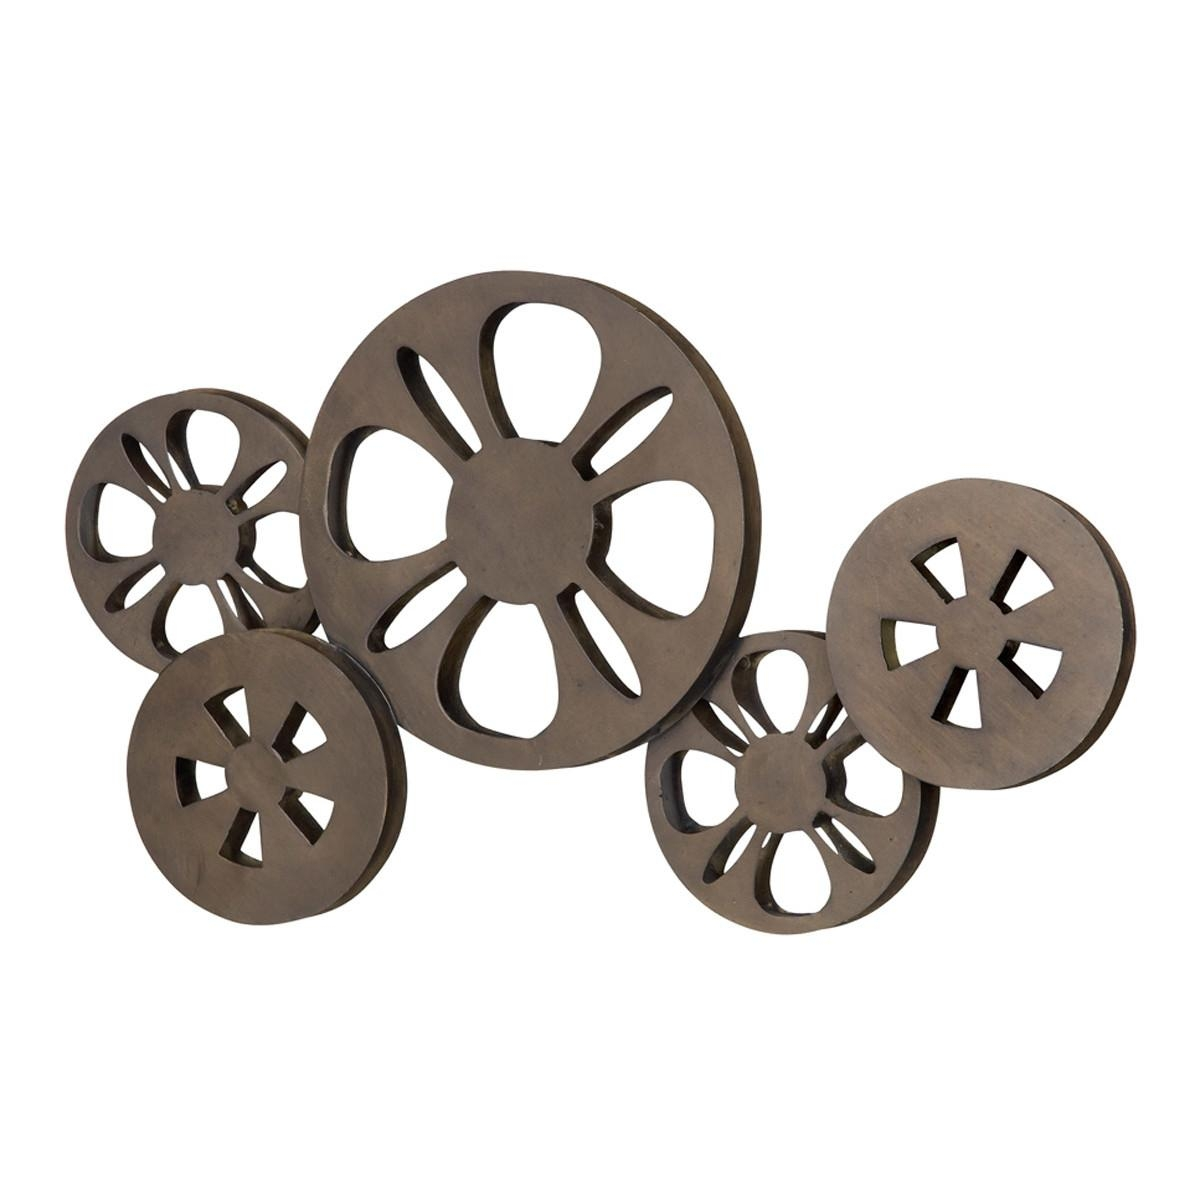 Images Of Movie Reel Wall Decor : Movie Reel Wall Decor Ideas Inside Movie Reel Wall Art (View 2 of 20)